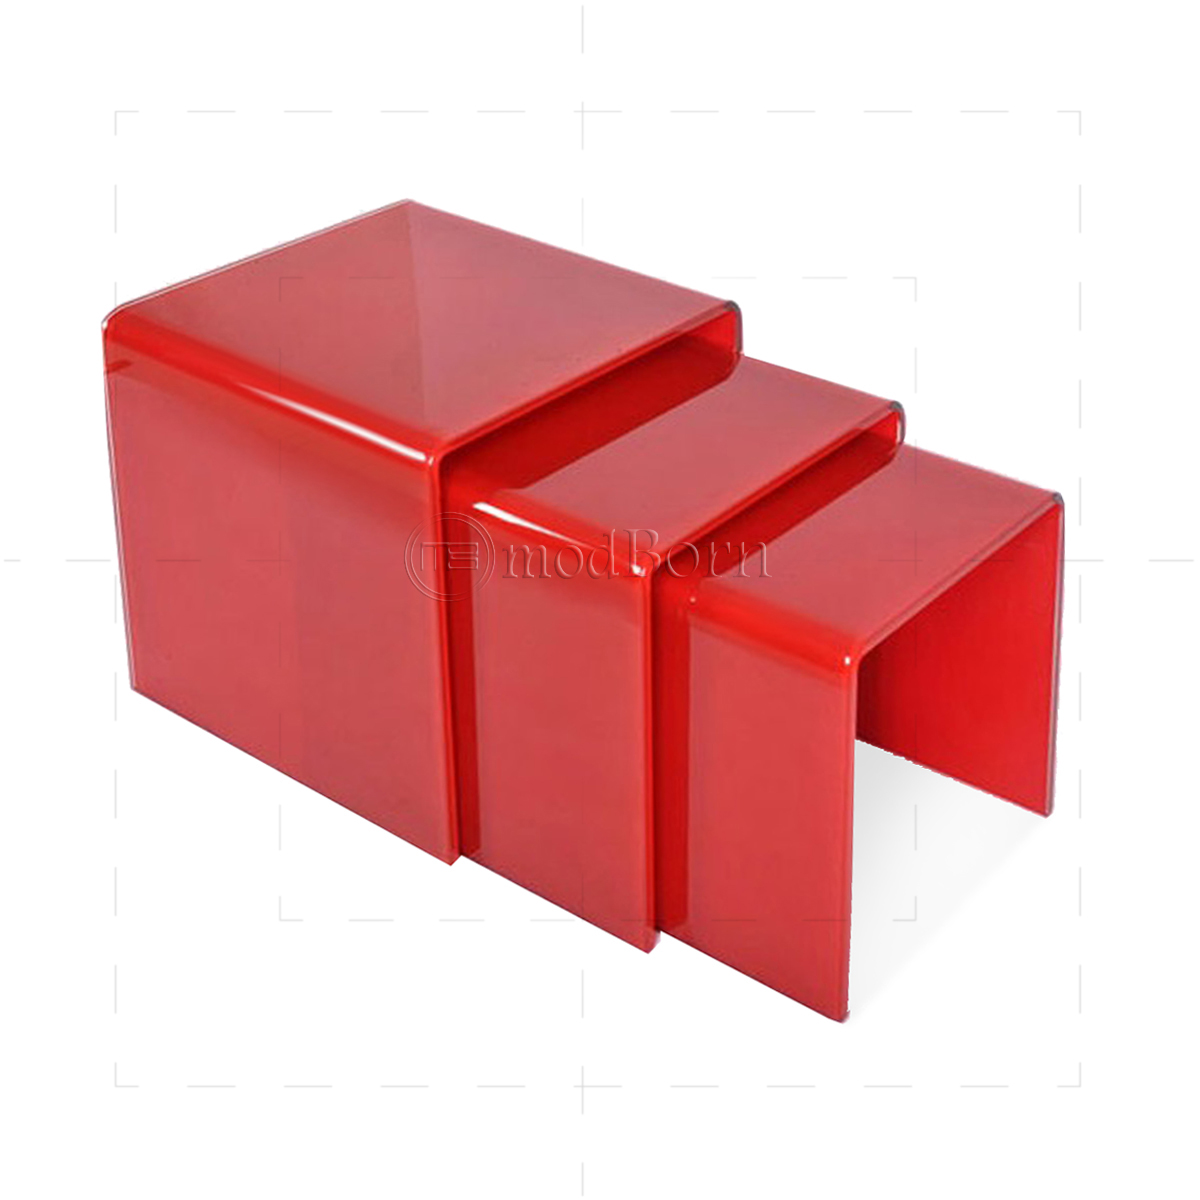 Coffee Tables Reception Coffee Tables For The Office The  Toughened Glass Nest of 3 Coffee Side Tables RED